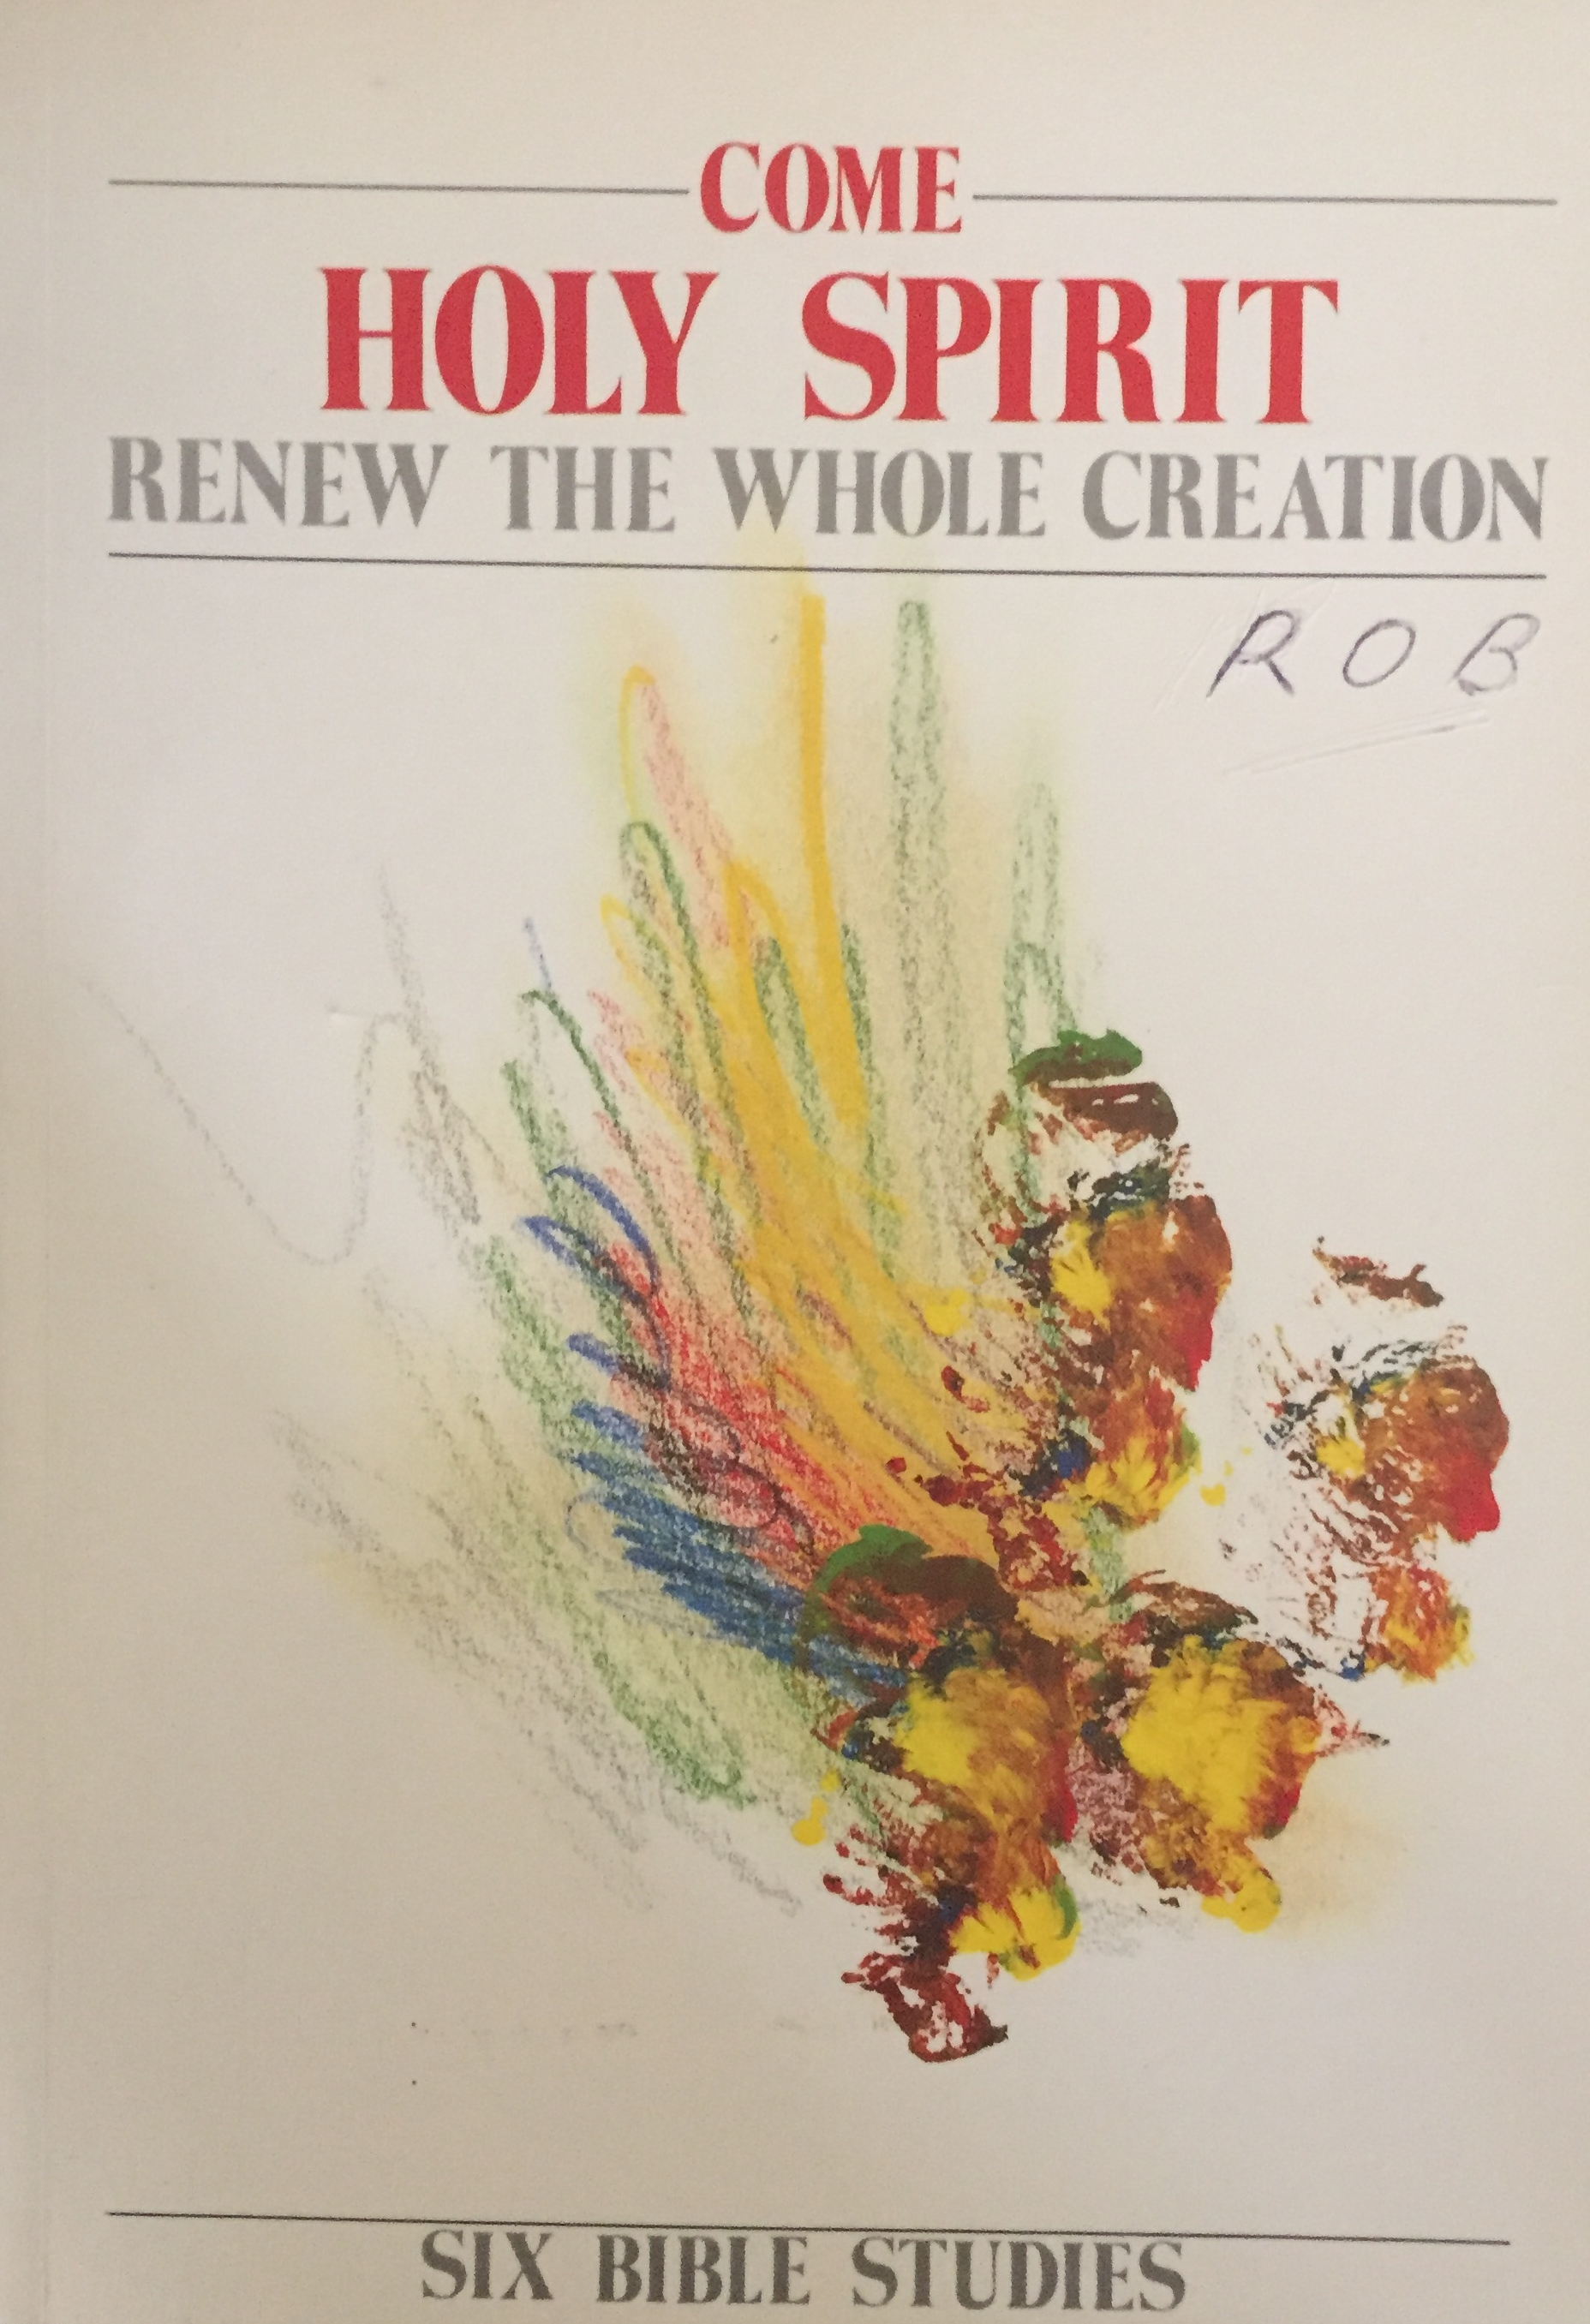 Come Holy Spirit - renew the whole creation